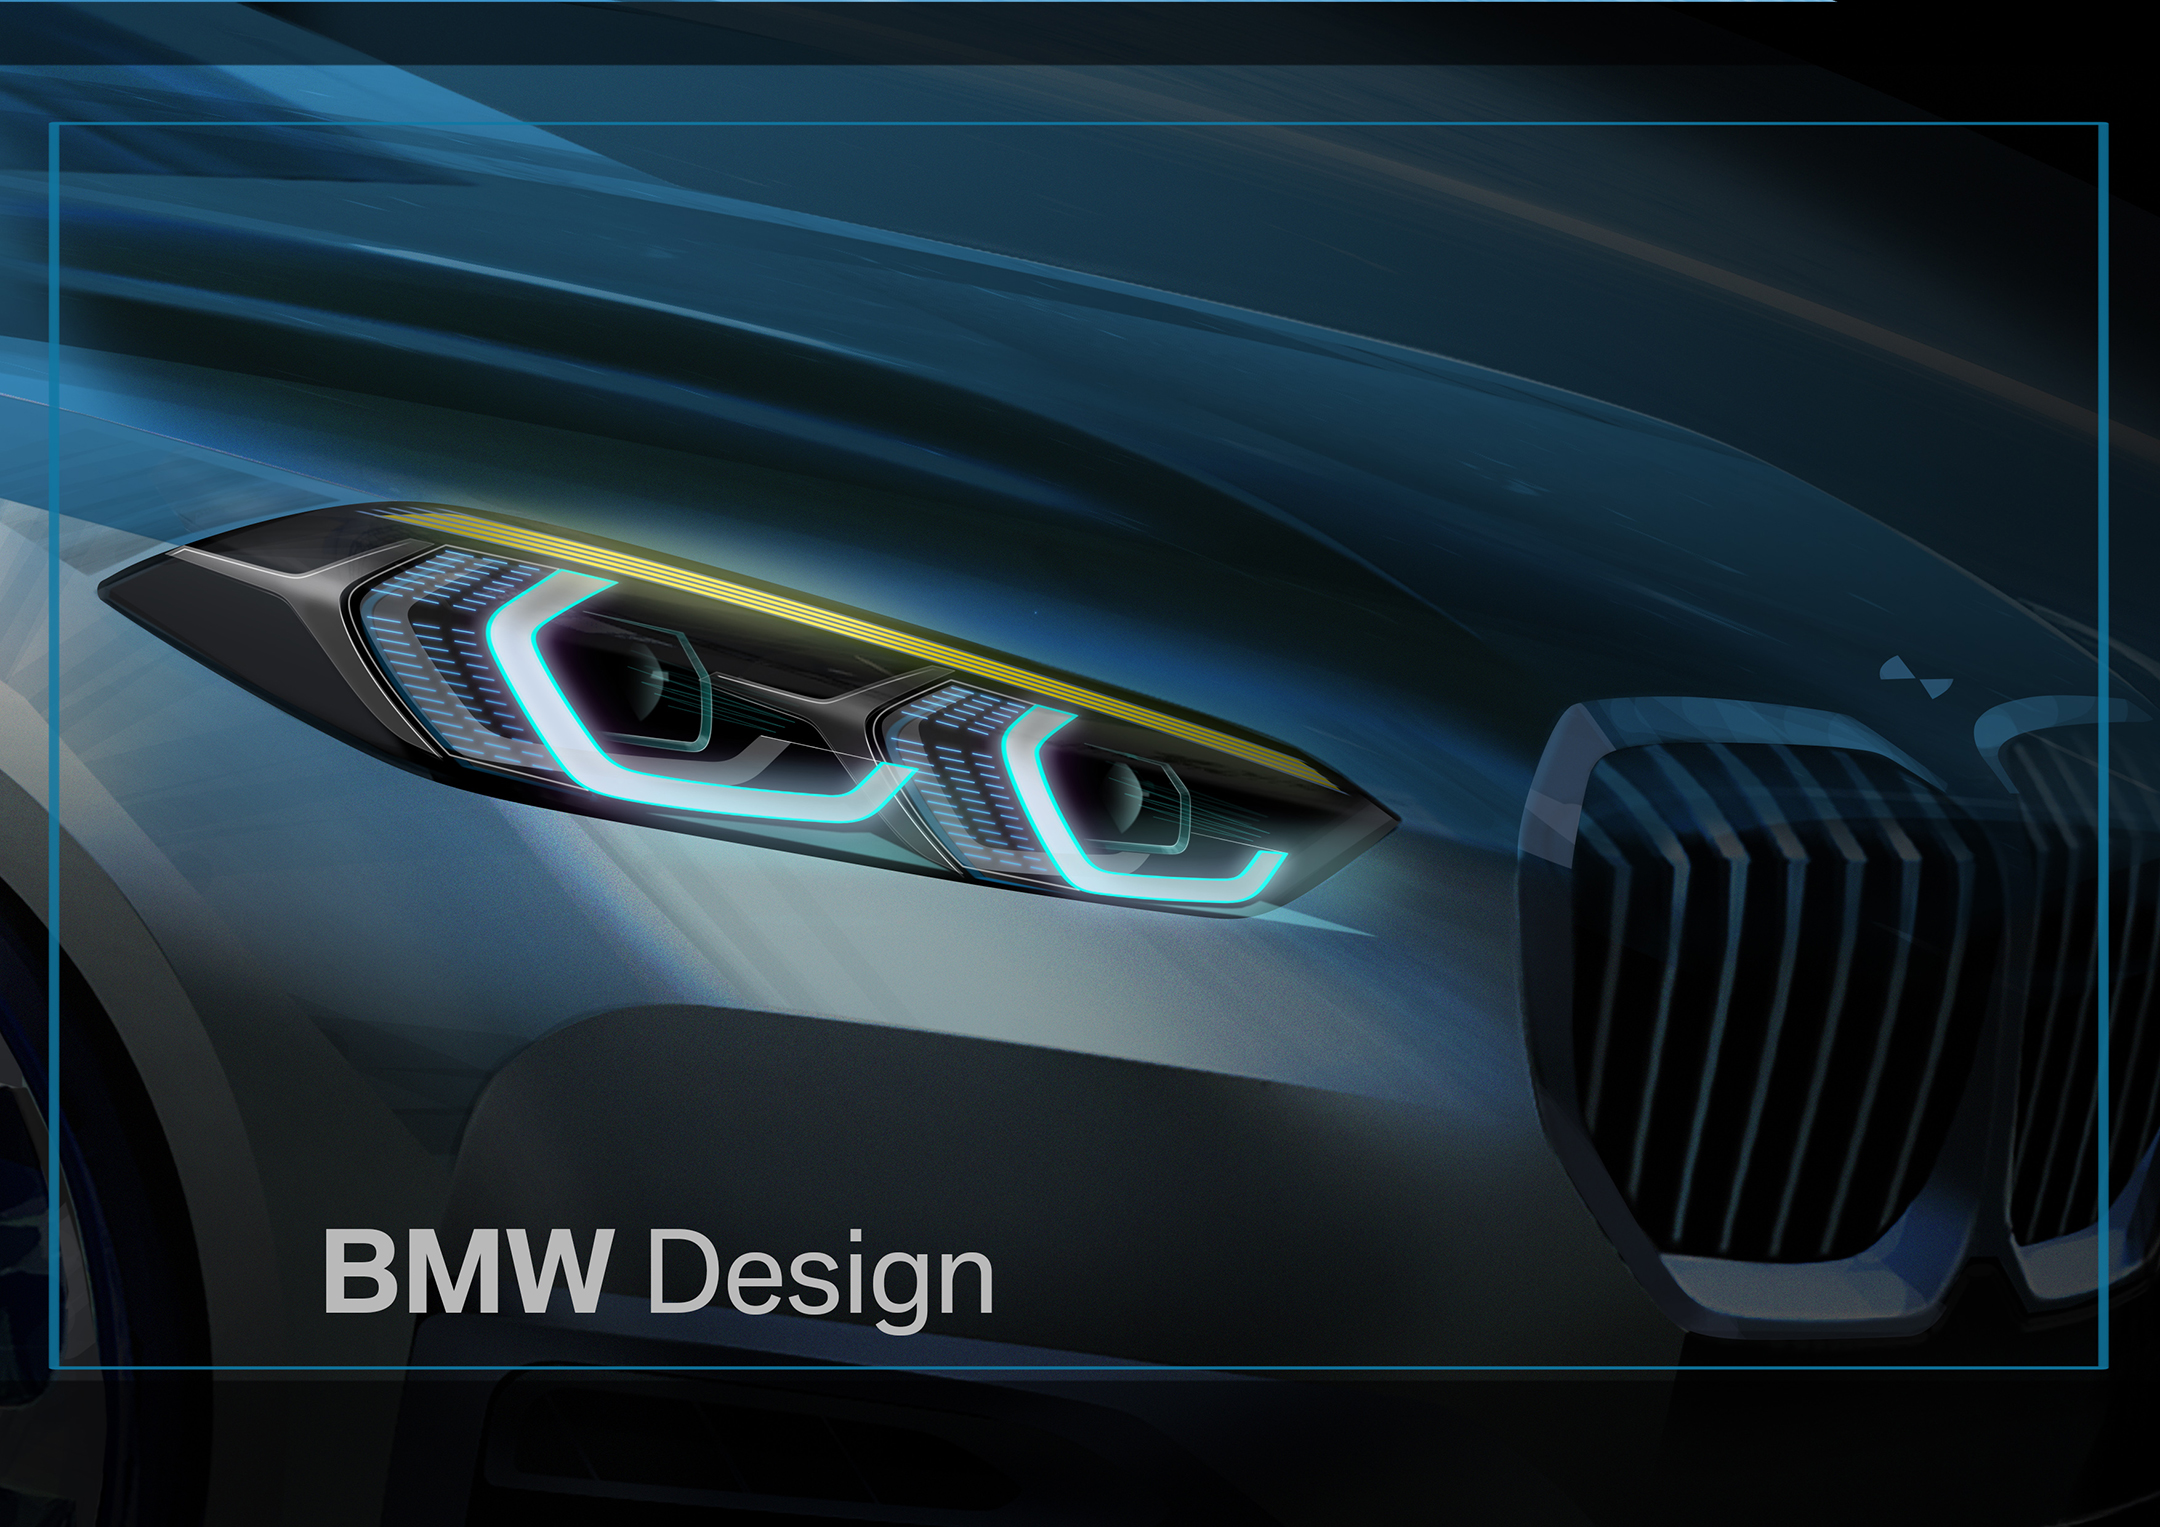 BMW 1 Series - 2019 - design sketch - front light